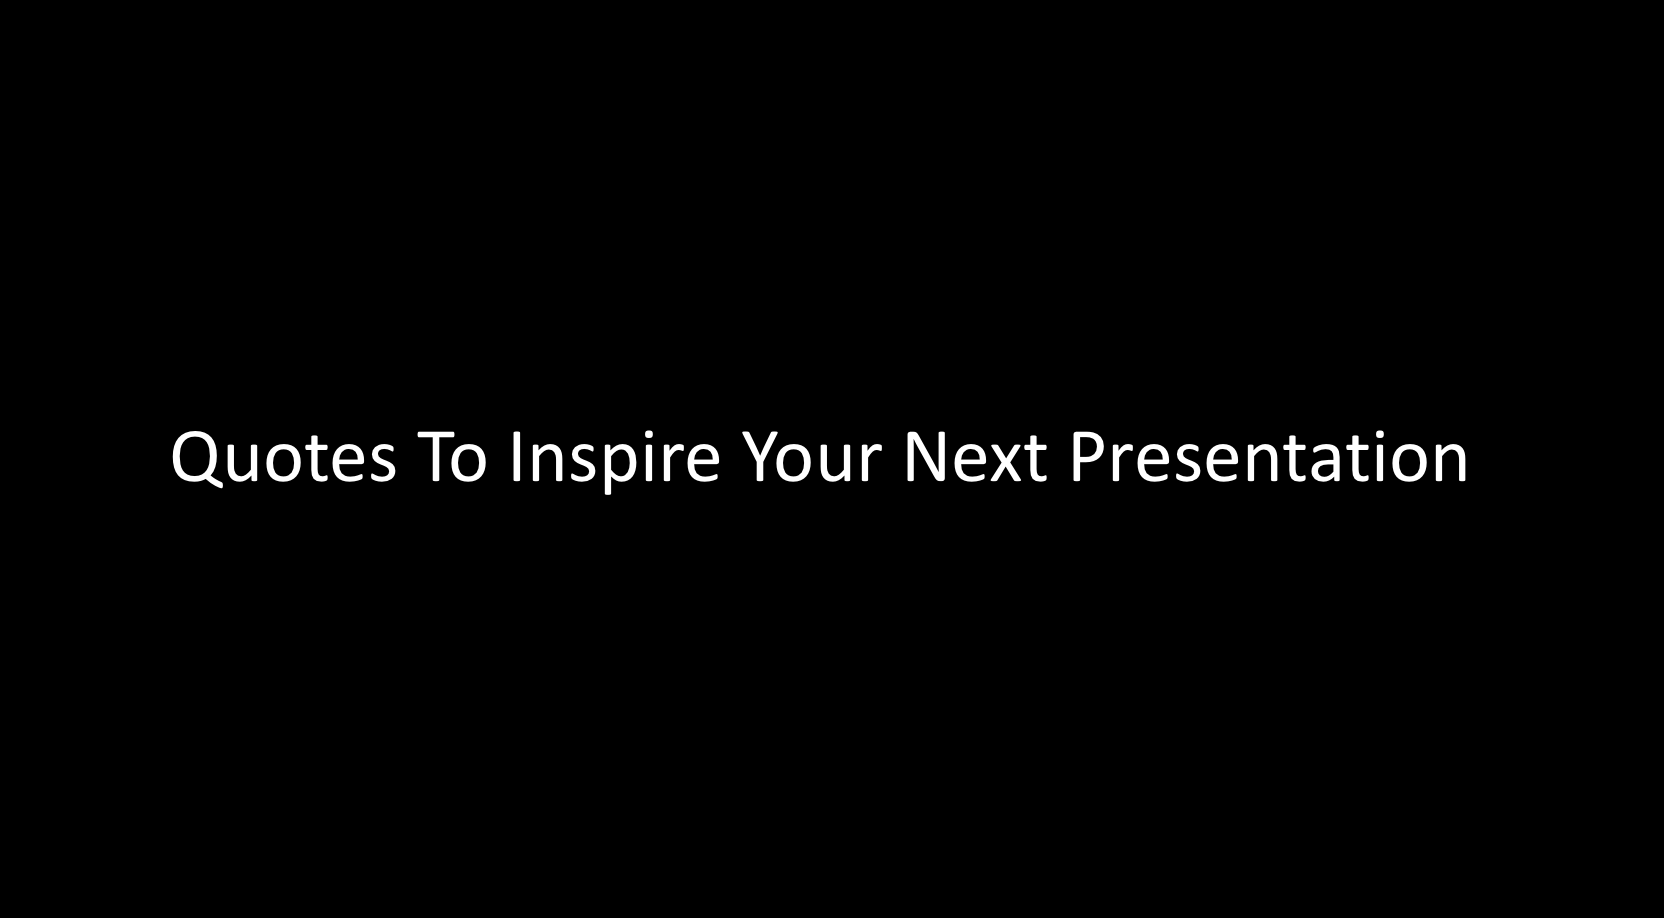 Quotes To Inspire Your Next Presentation